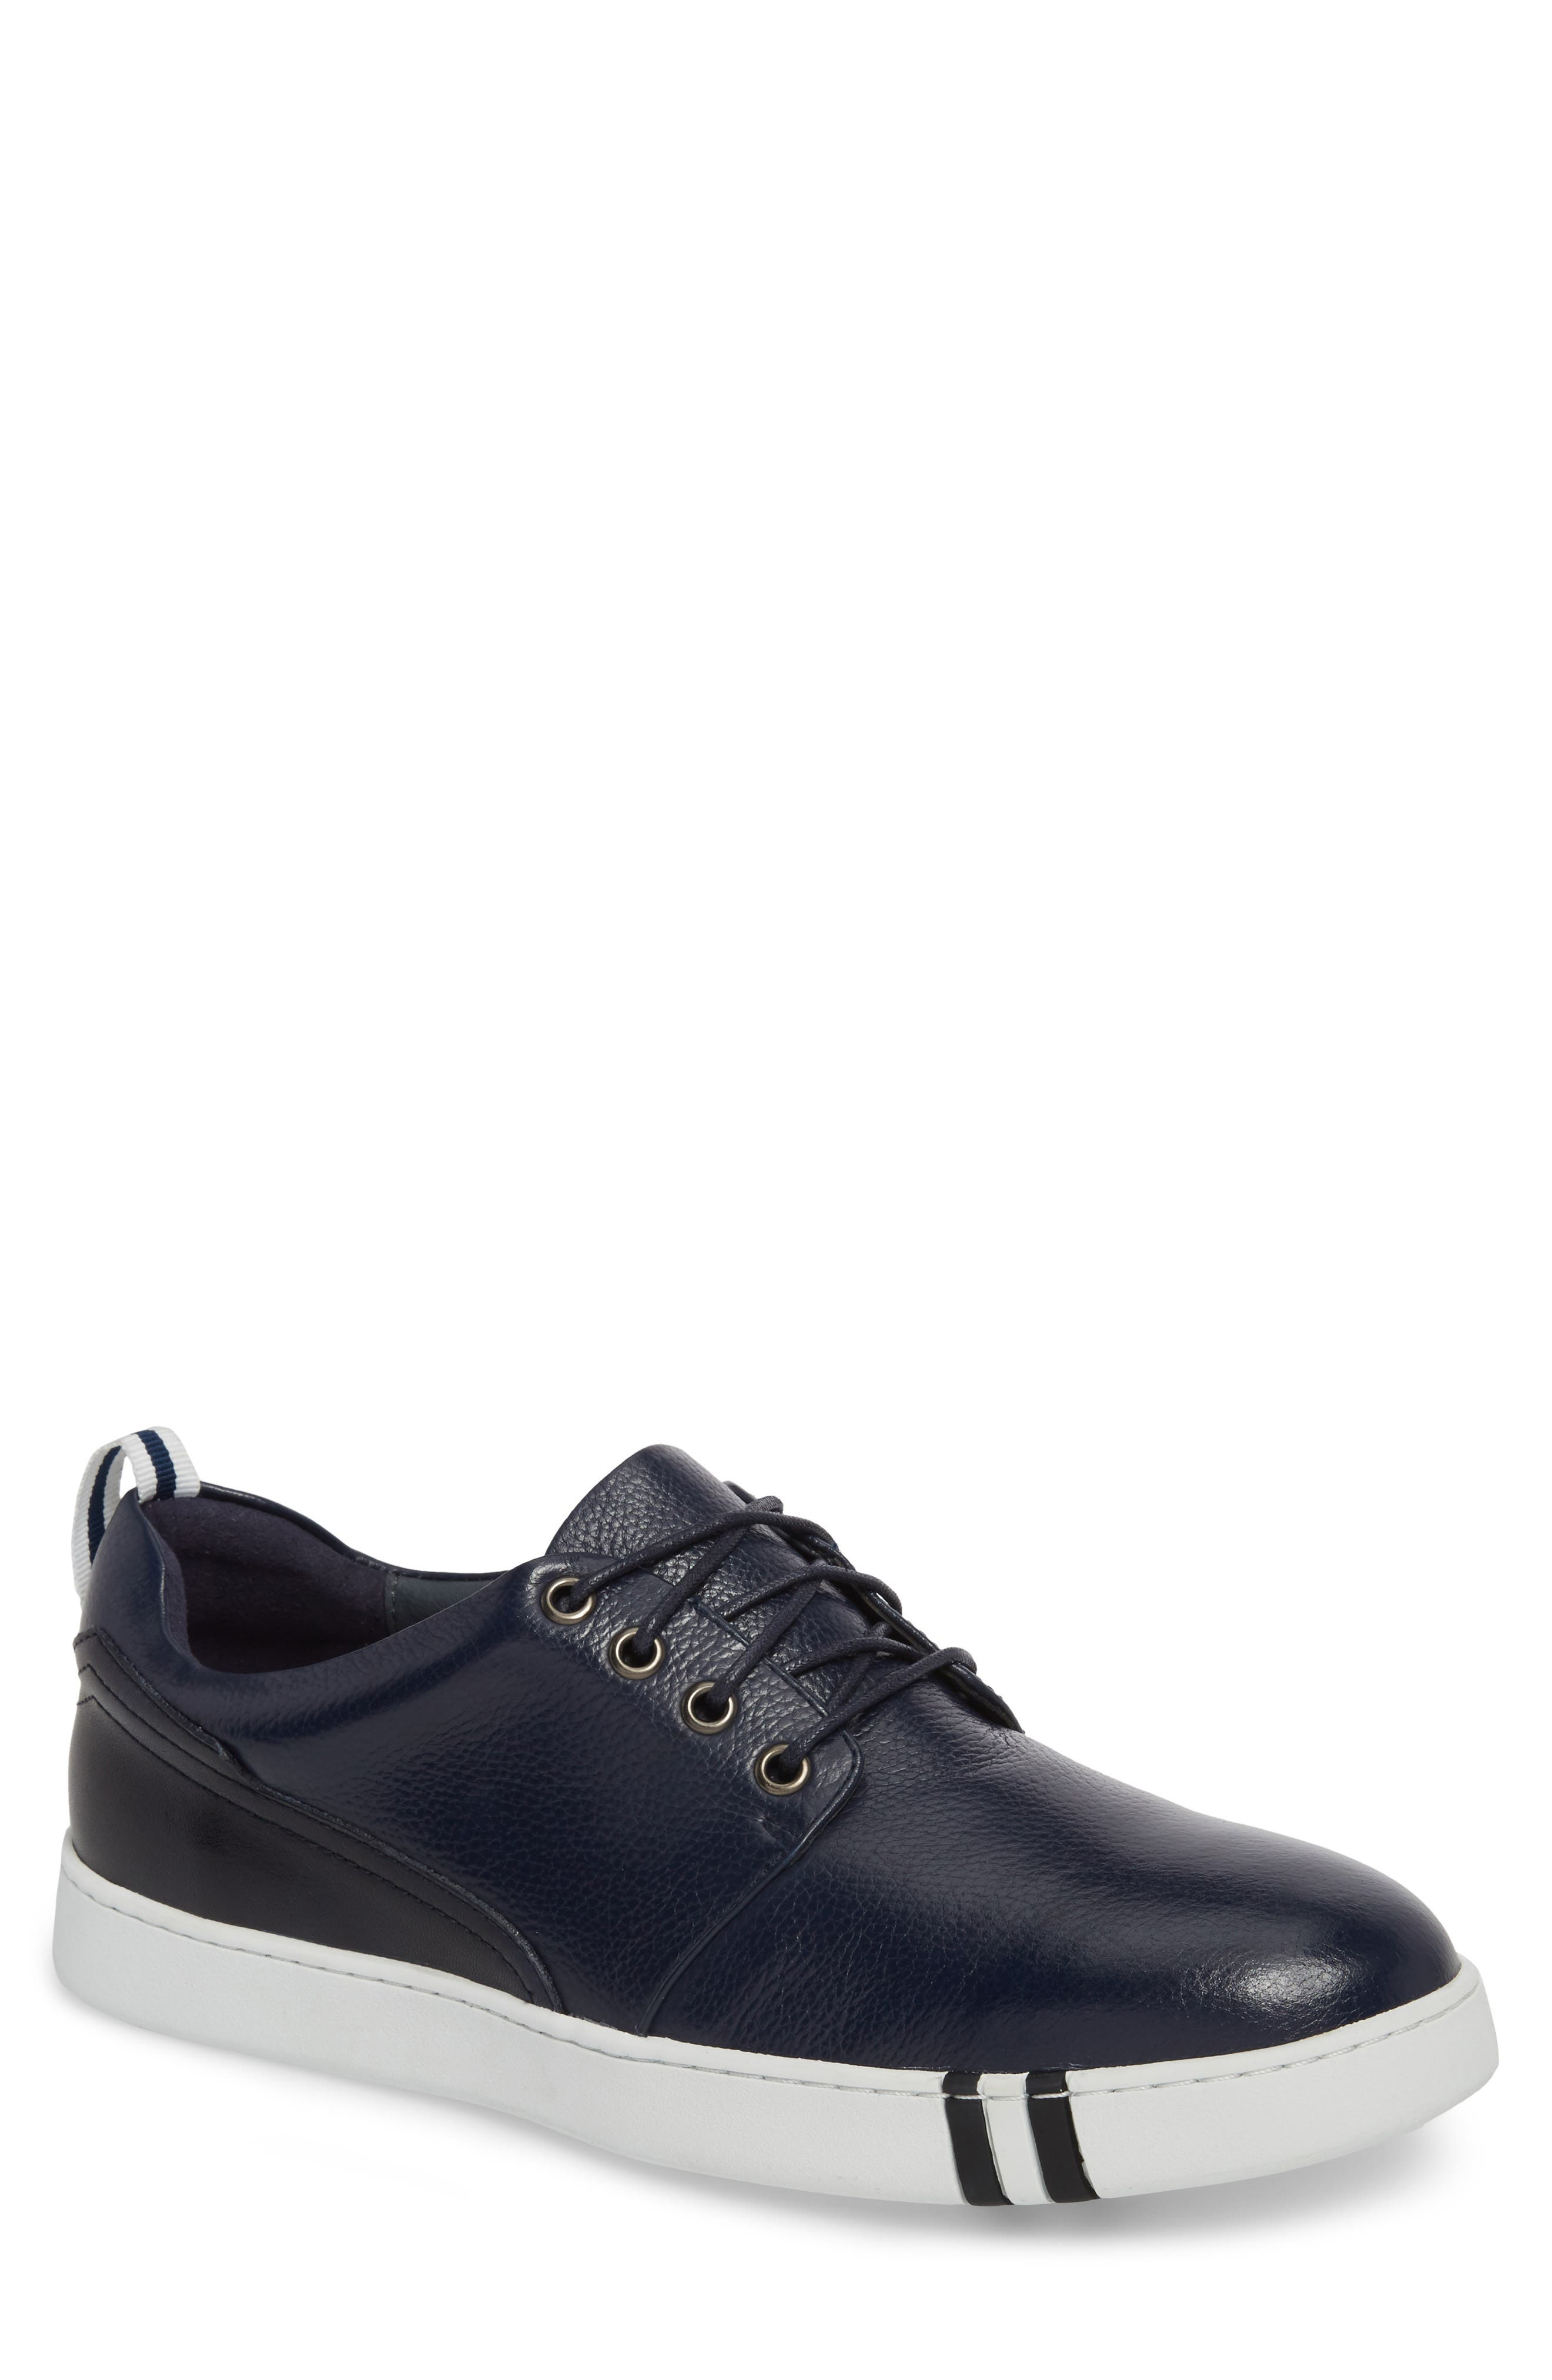 Kings Low Top Sneaker,                             Main thumbnail 1, color,                             Navy Leather